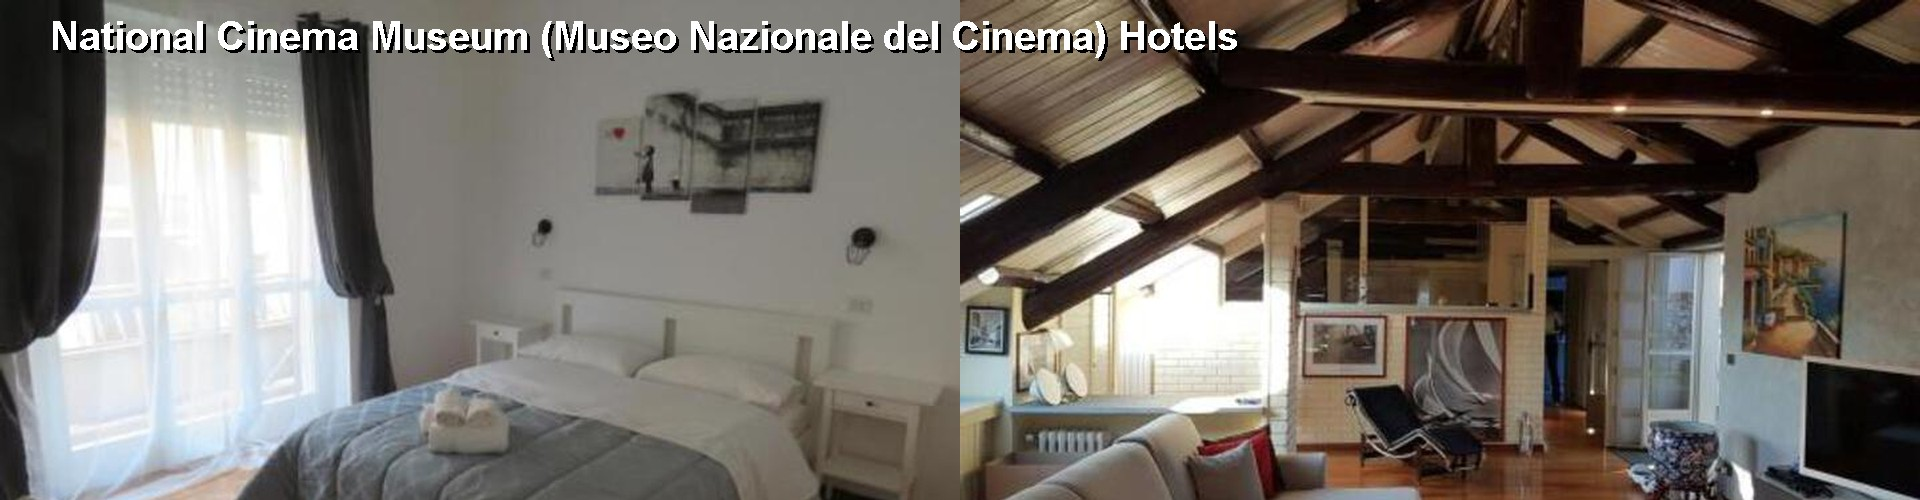 5 Best Hotels near National Cinema Museum (Museo Nazionale del Cinema)